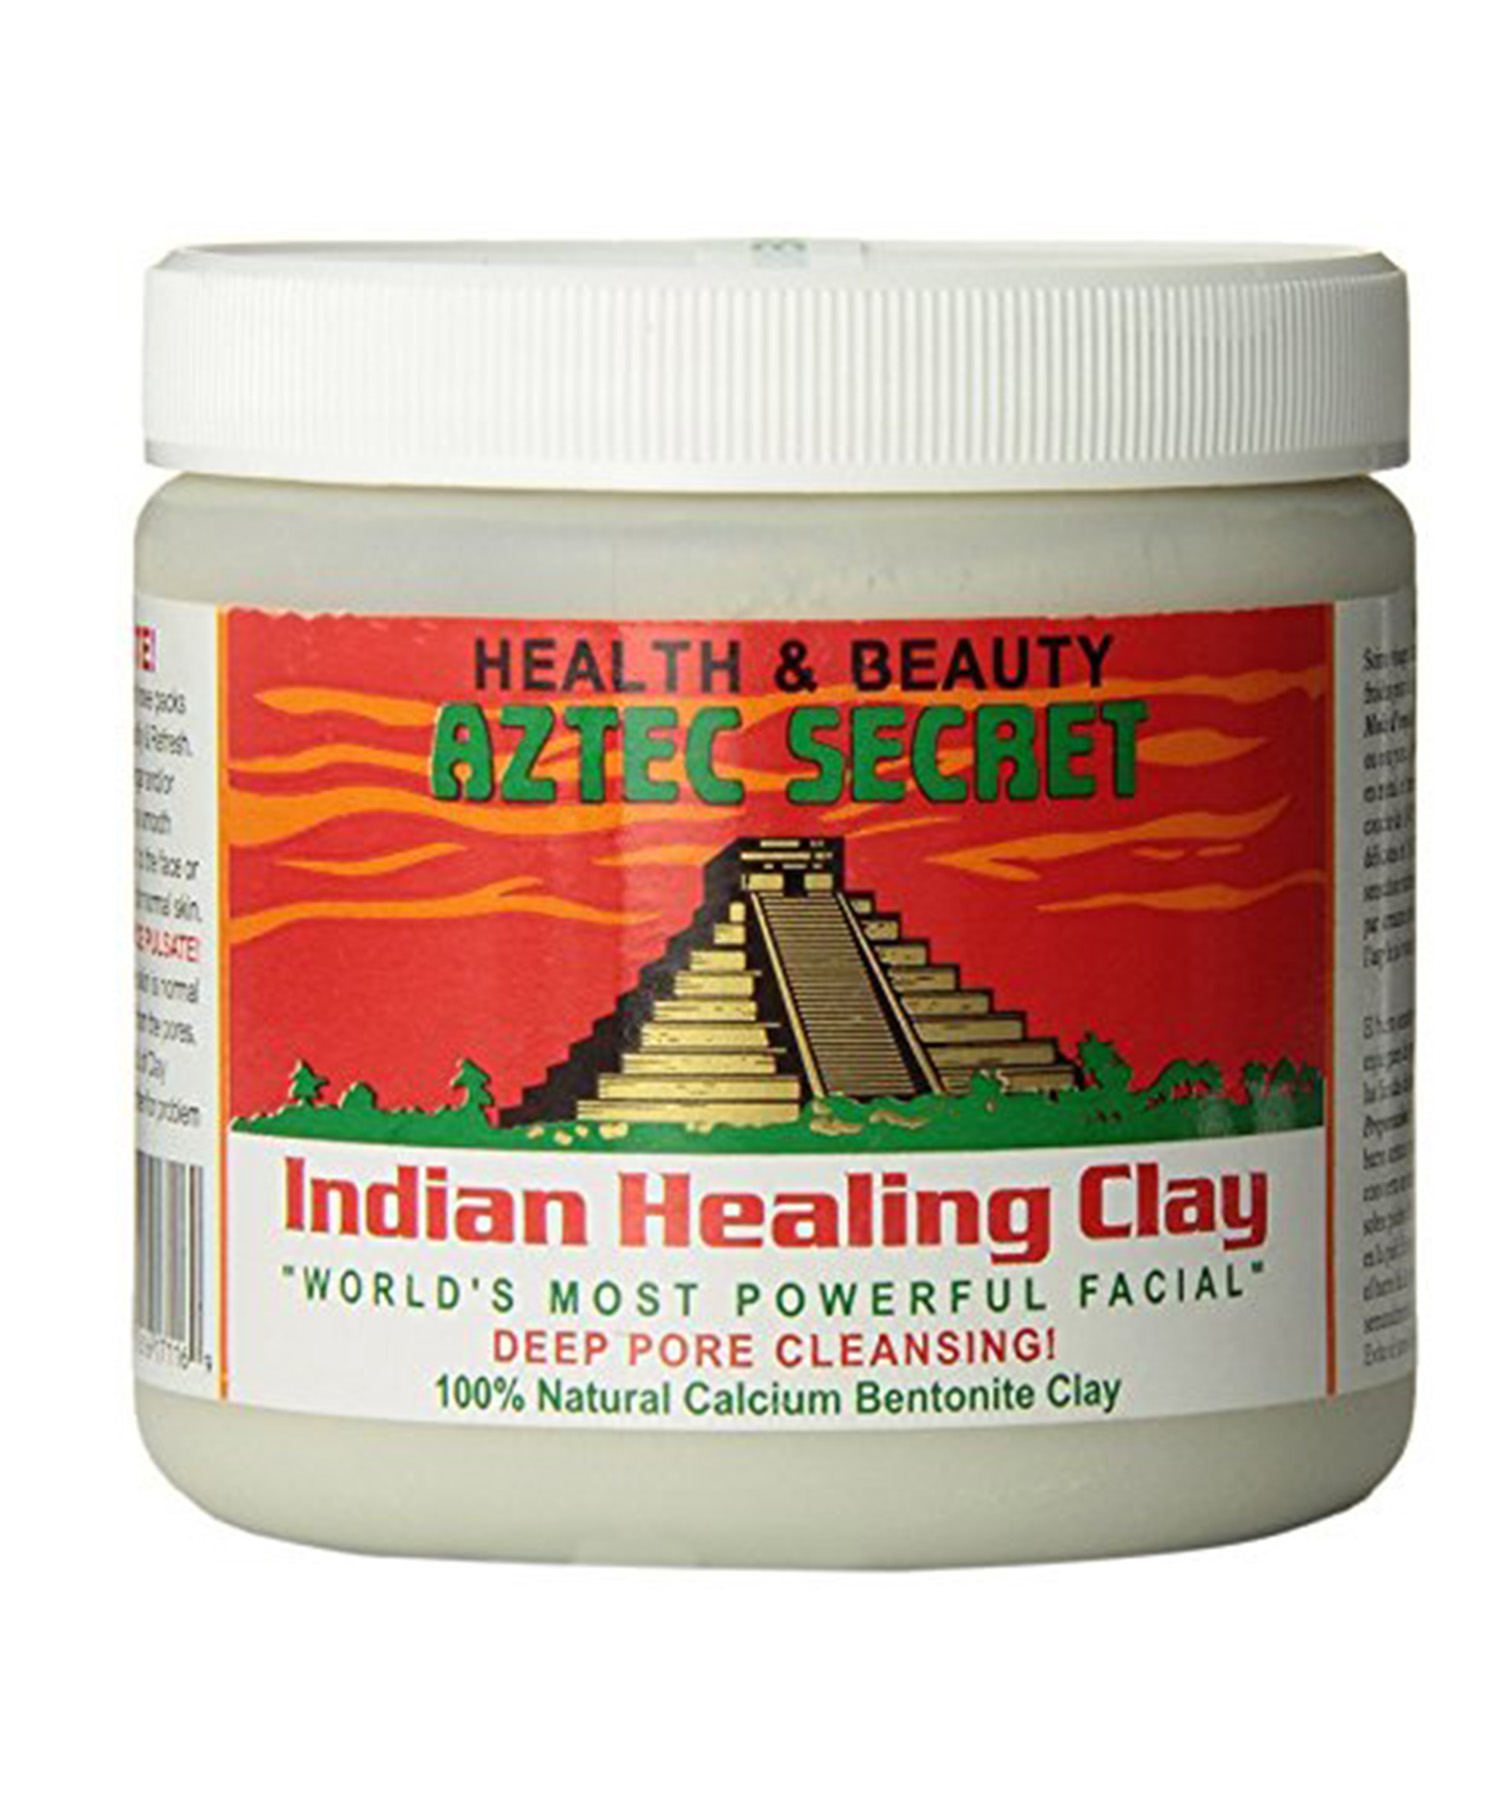 Aztec Secret Clay Face and Body Mask